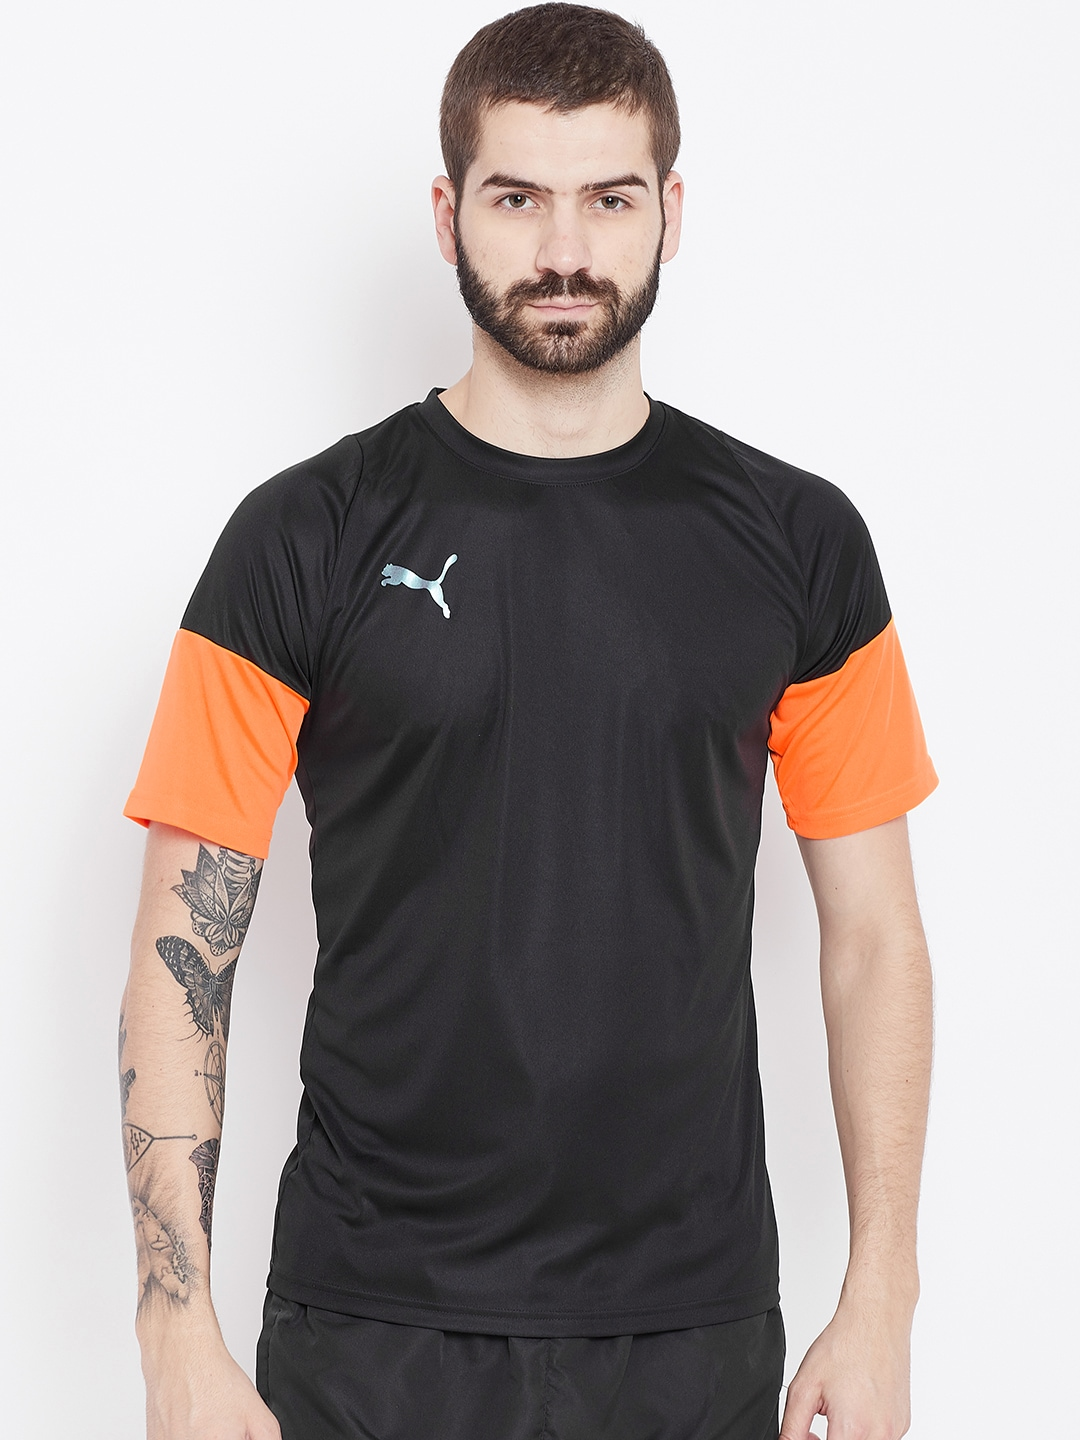 c3bf1414f05182 Puma T shirts - Buy Puma T Shirts For Men   Women Online in India